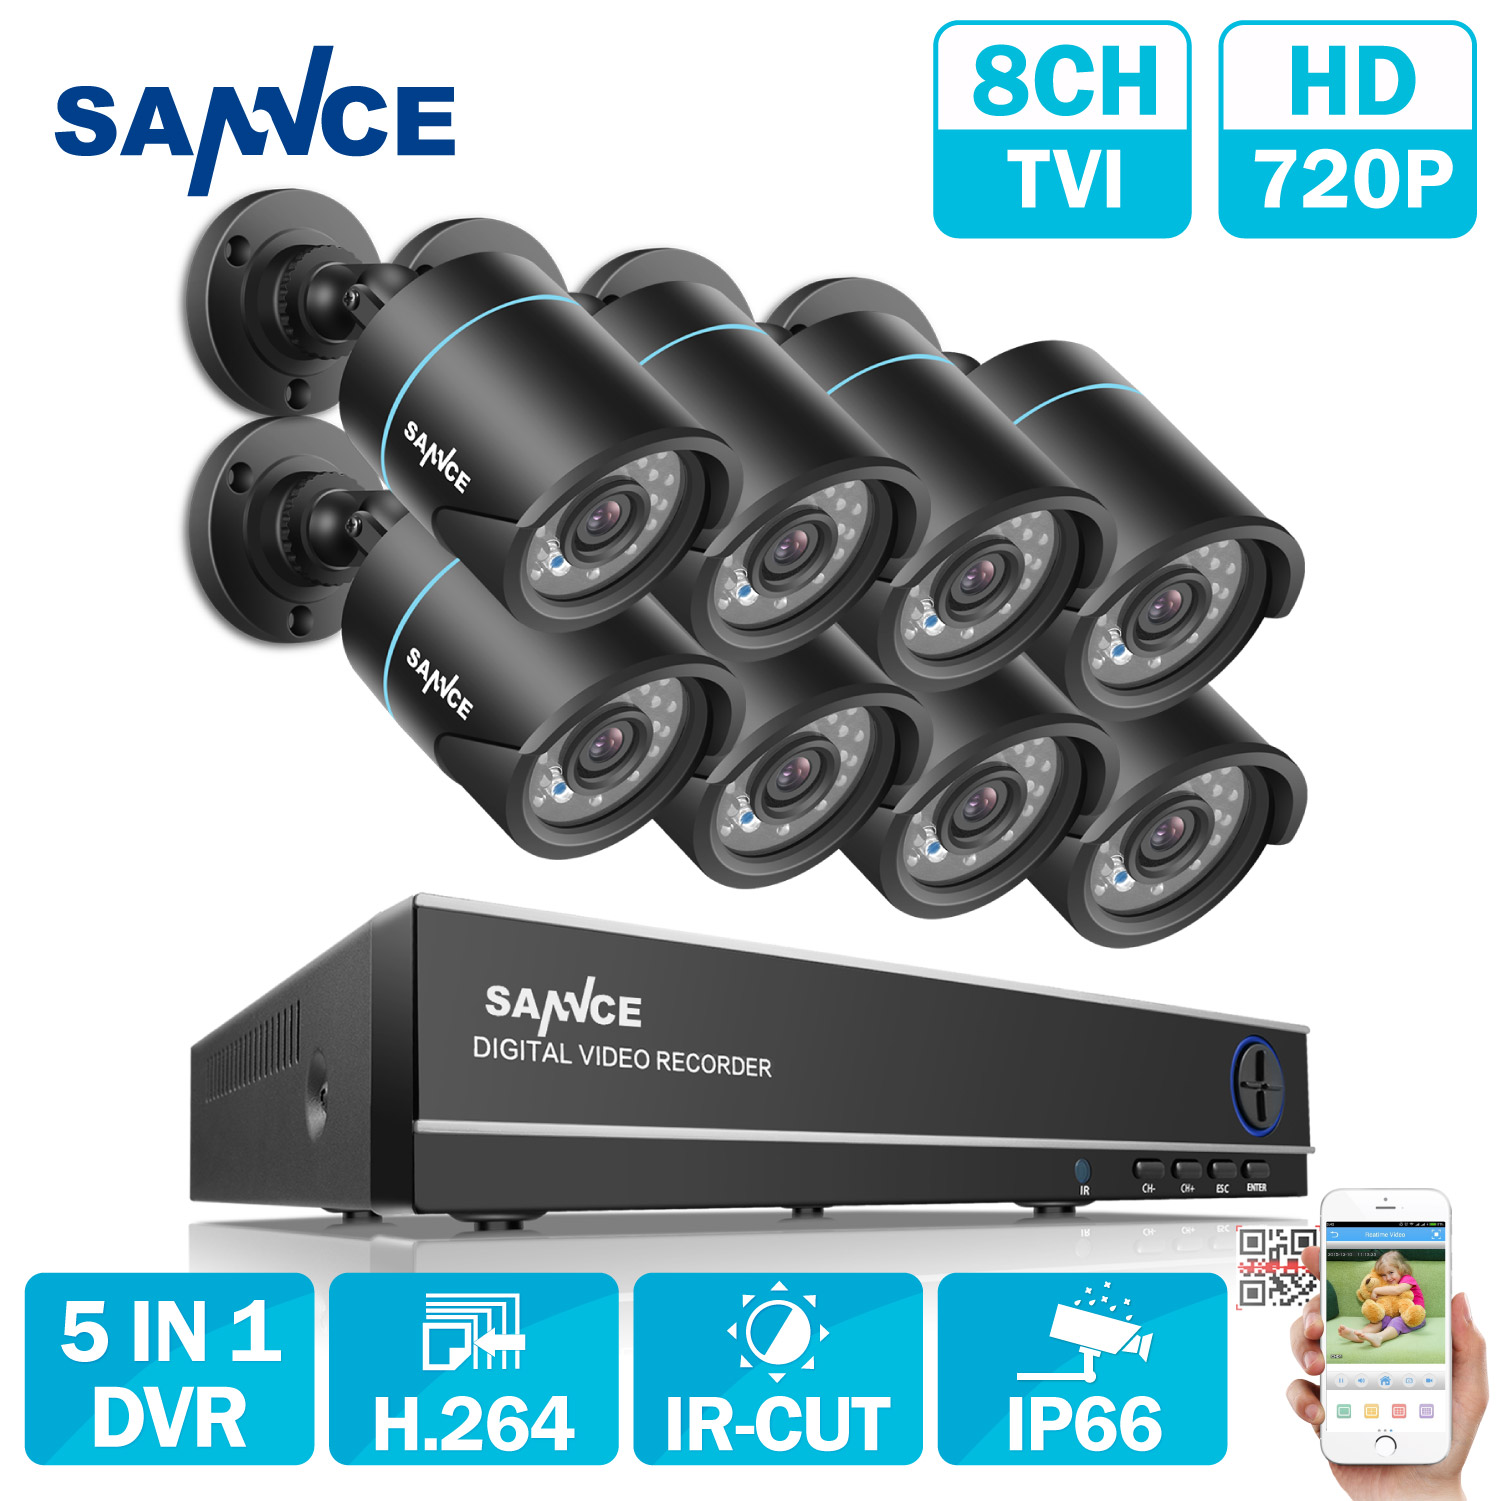 SANNCE 8CH Security Camera System 1080N 5in1 DVR Reorder and 8PCS HD 720P Outdoor Bullet CCTV Cameras